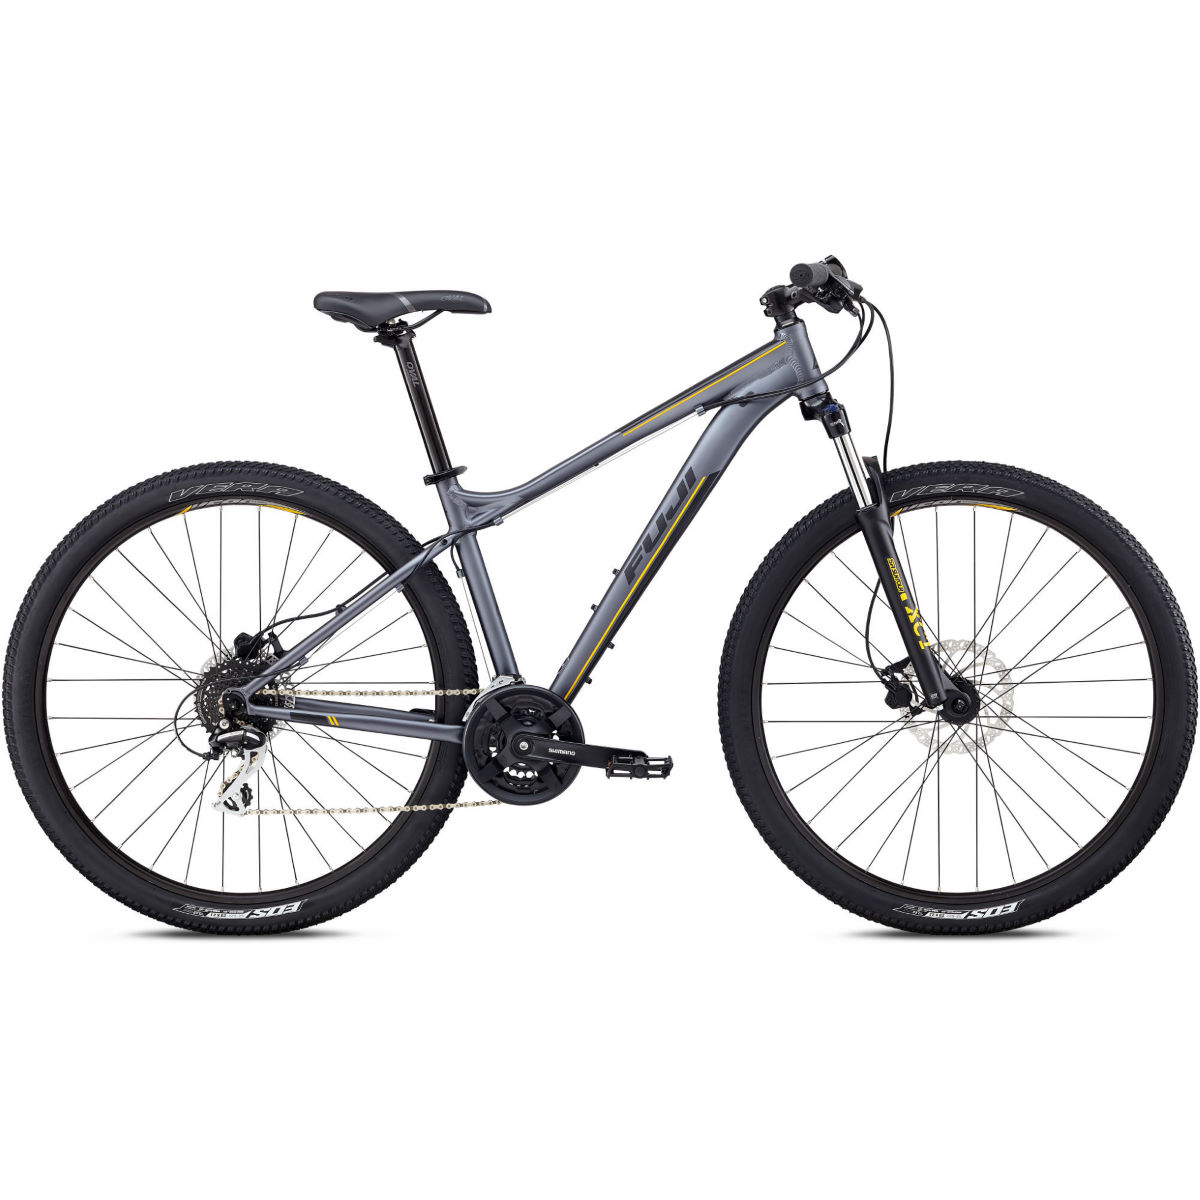 VTT semi-rigide Fuji Nevada 27,5 1.7 - 53cm(21'') Stock Bike